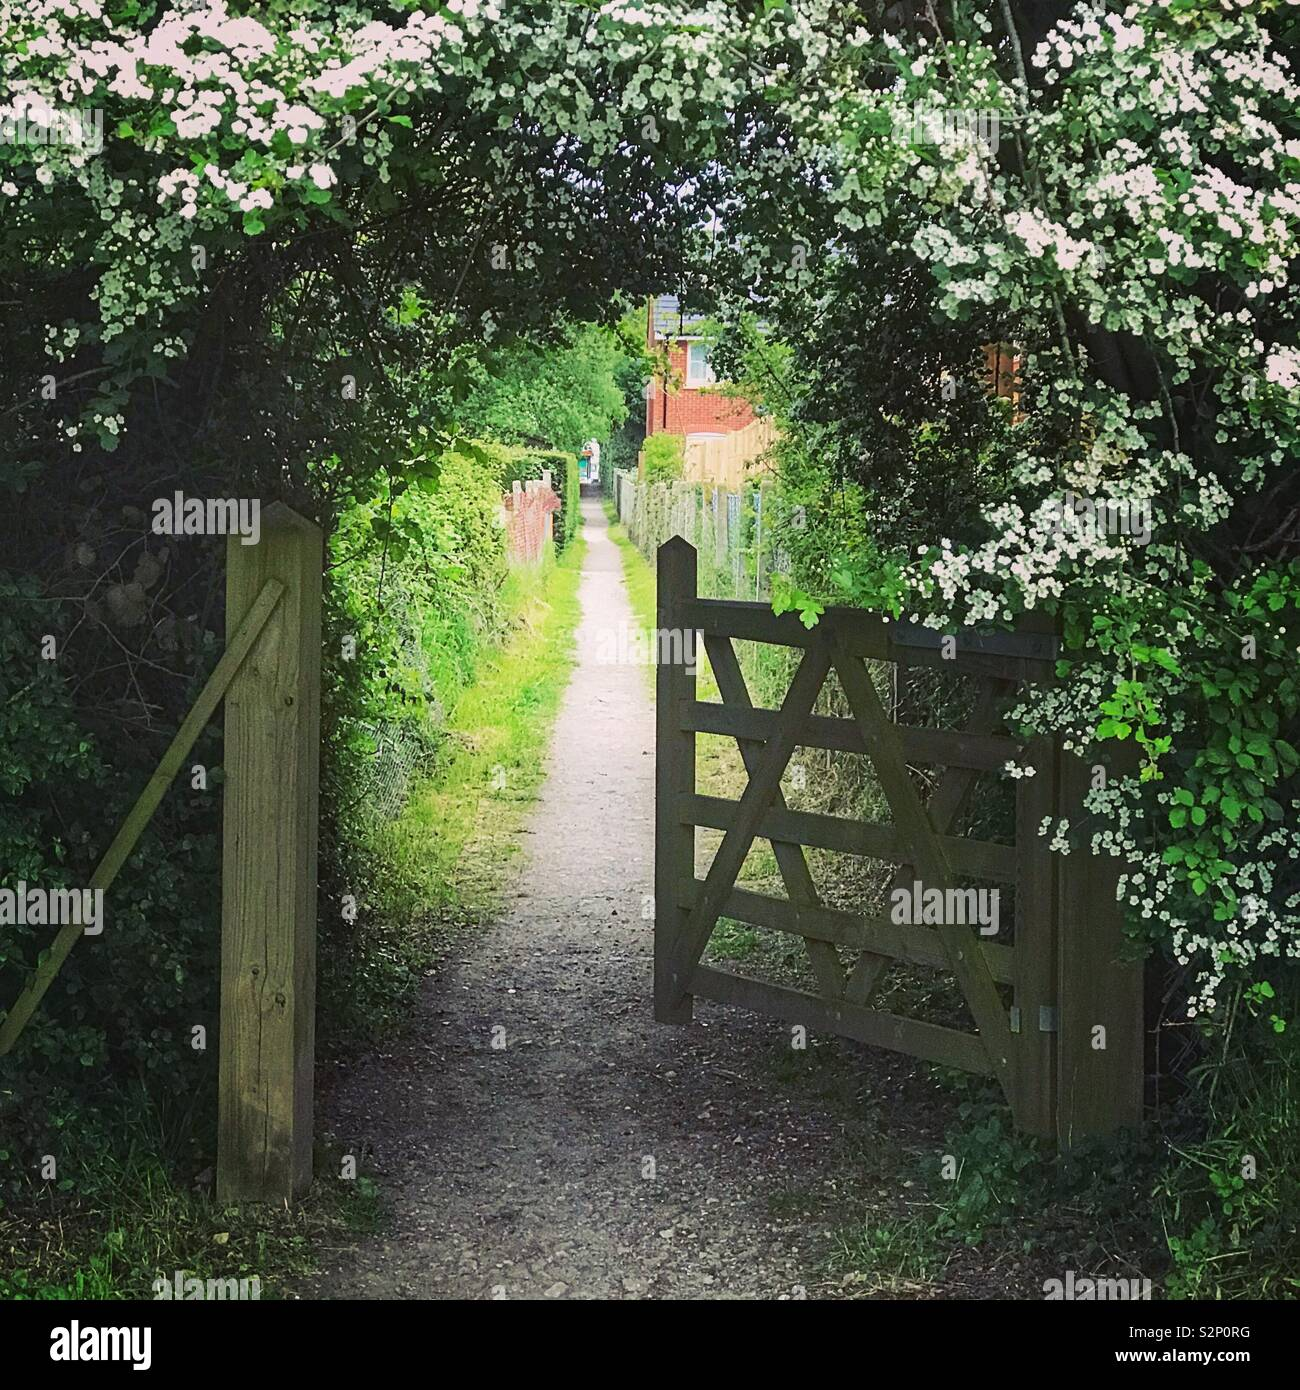 Through the gate and follow the path - Stock Image